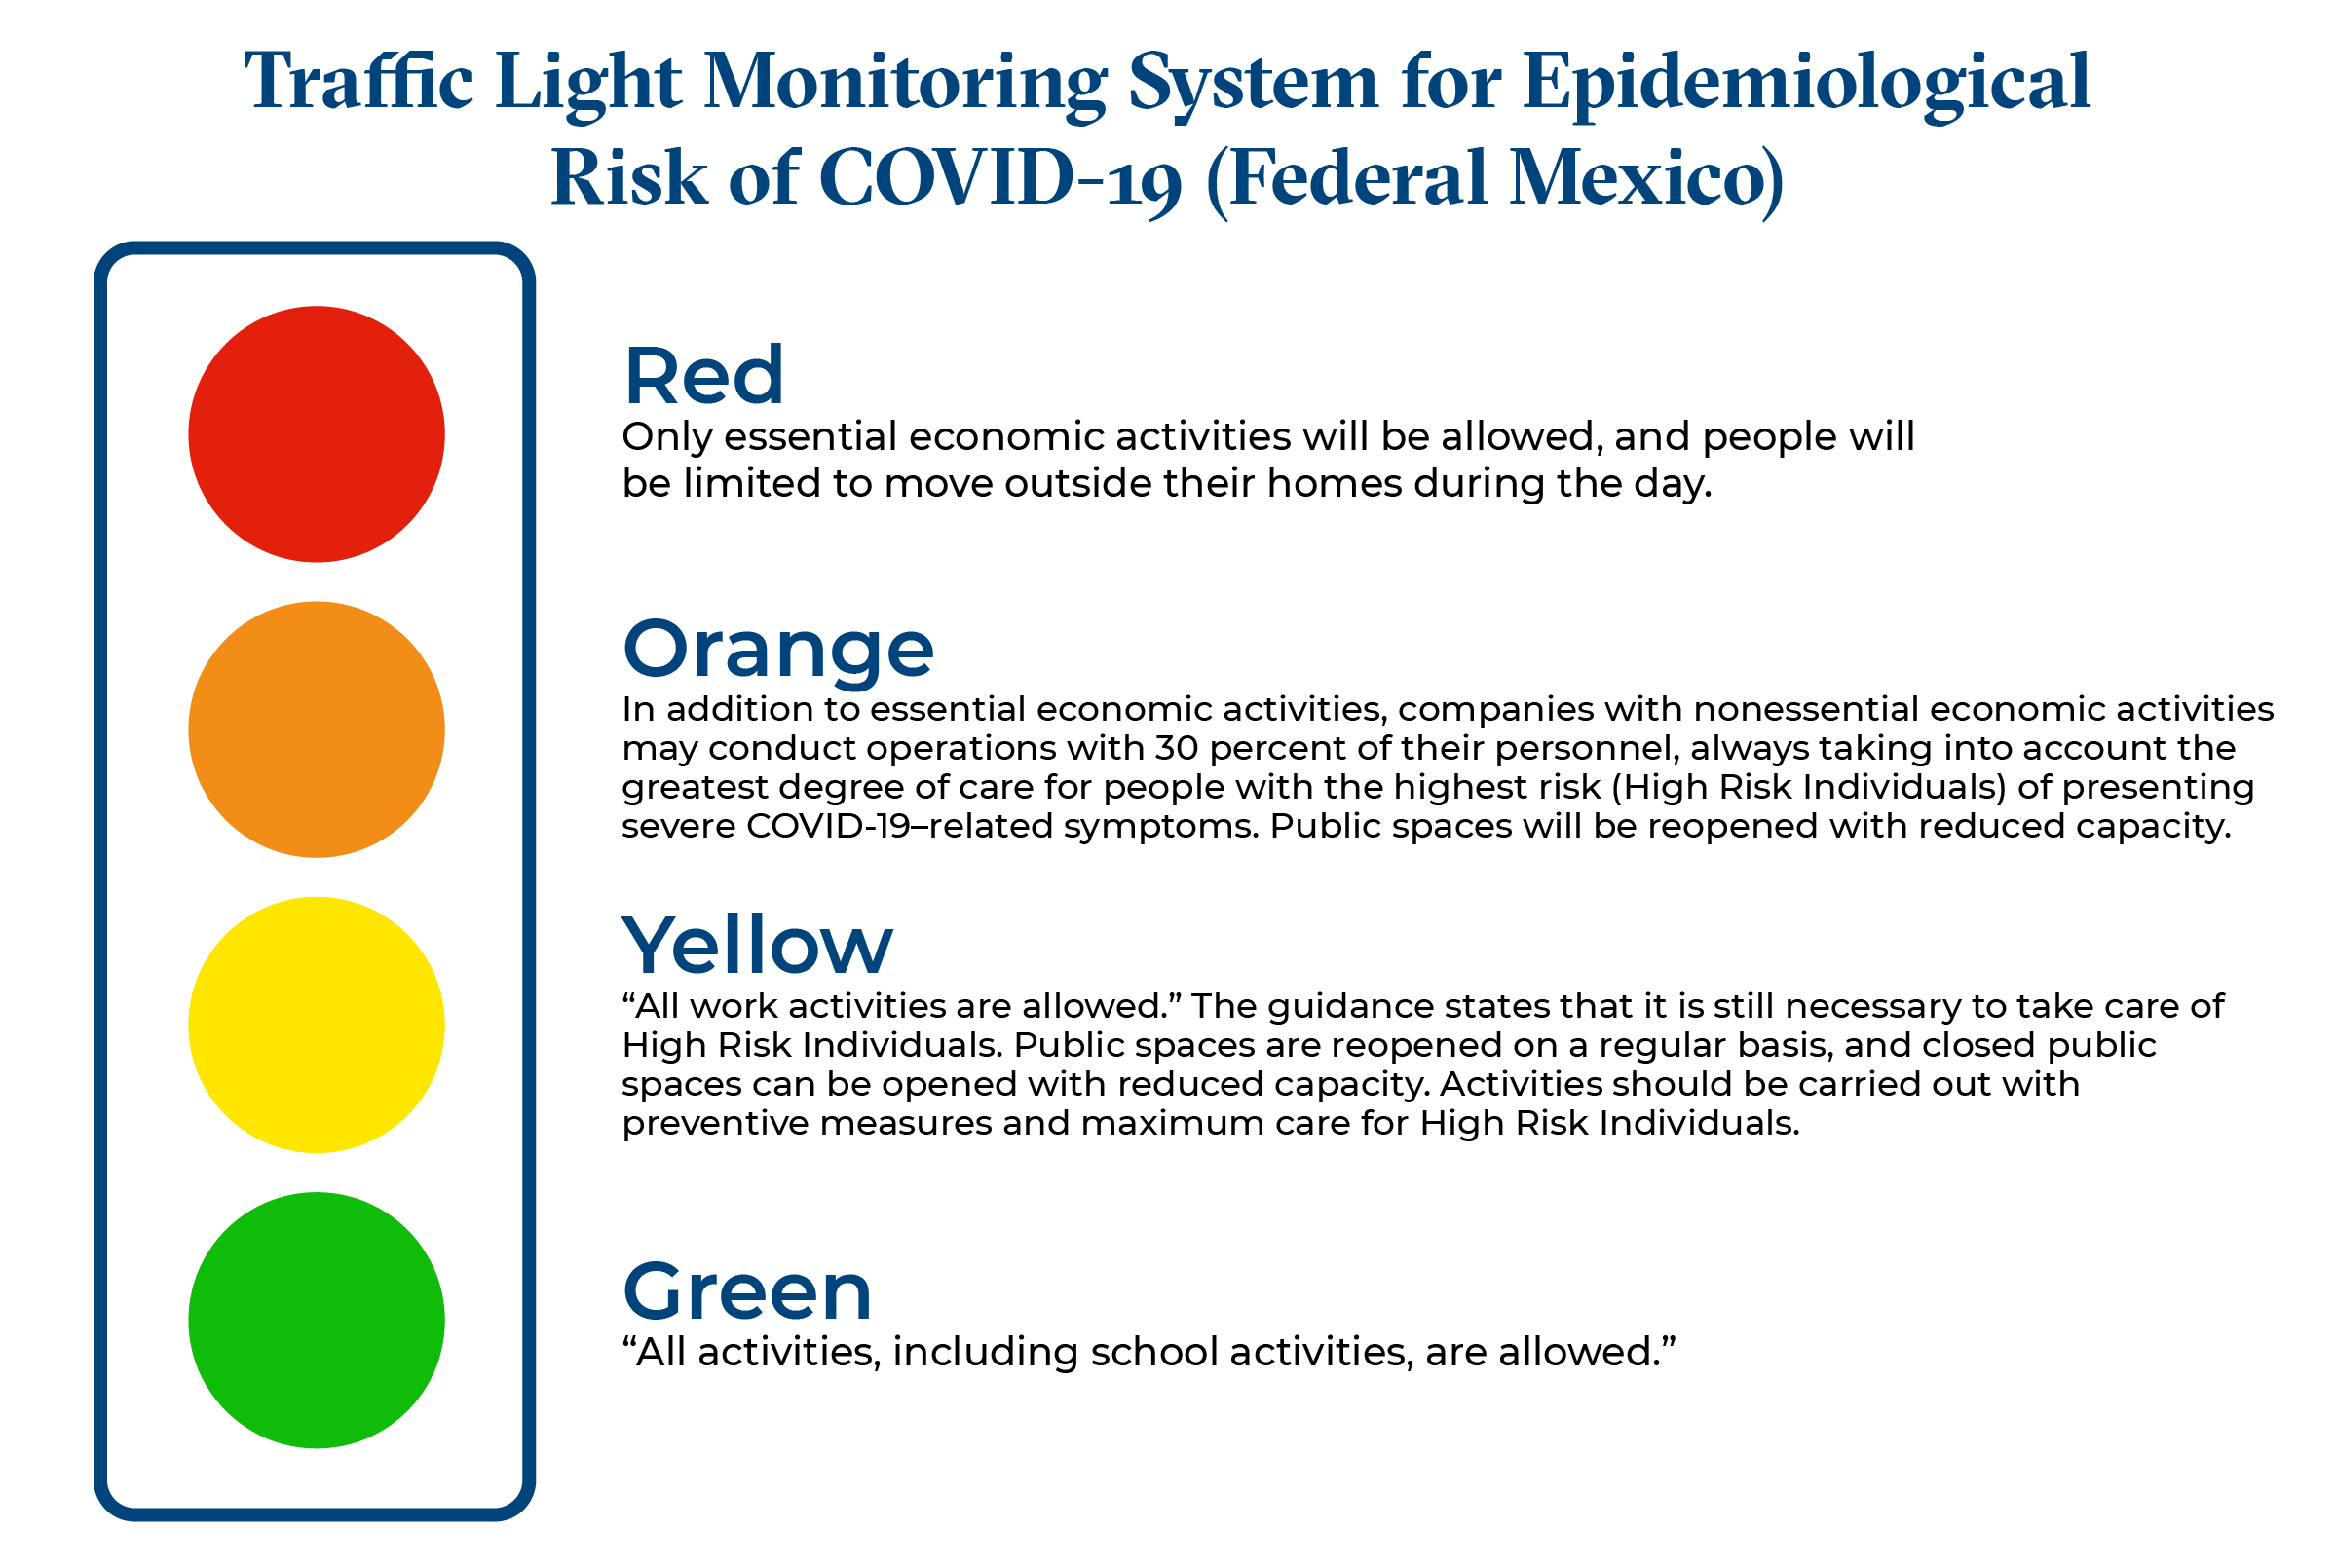 Mexico COVID-19 Traffic Light Monitoring System image